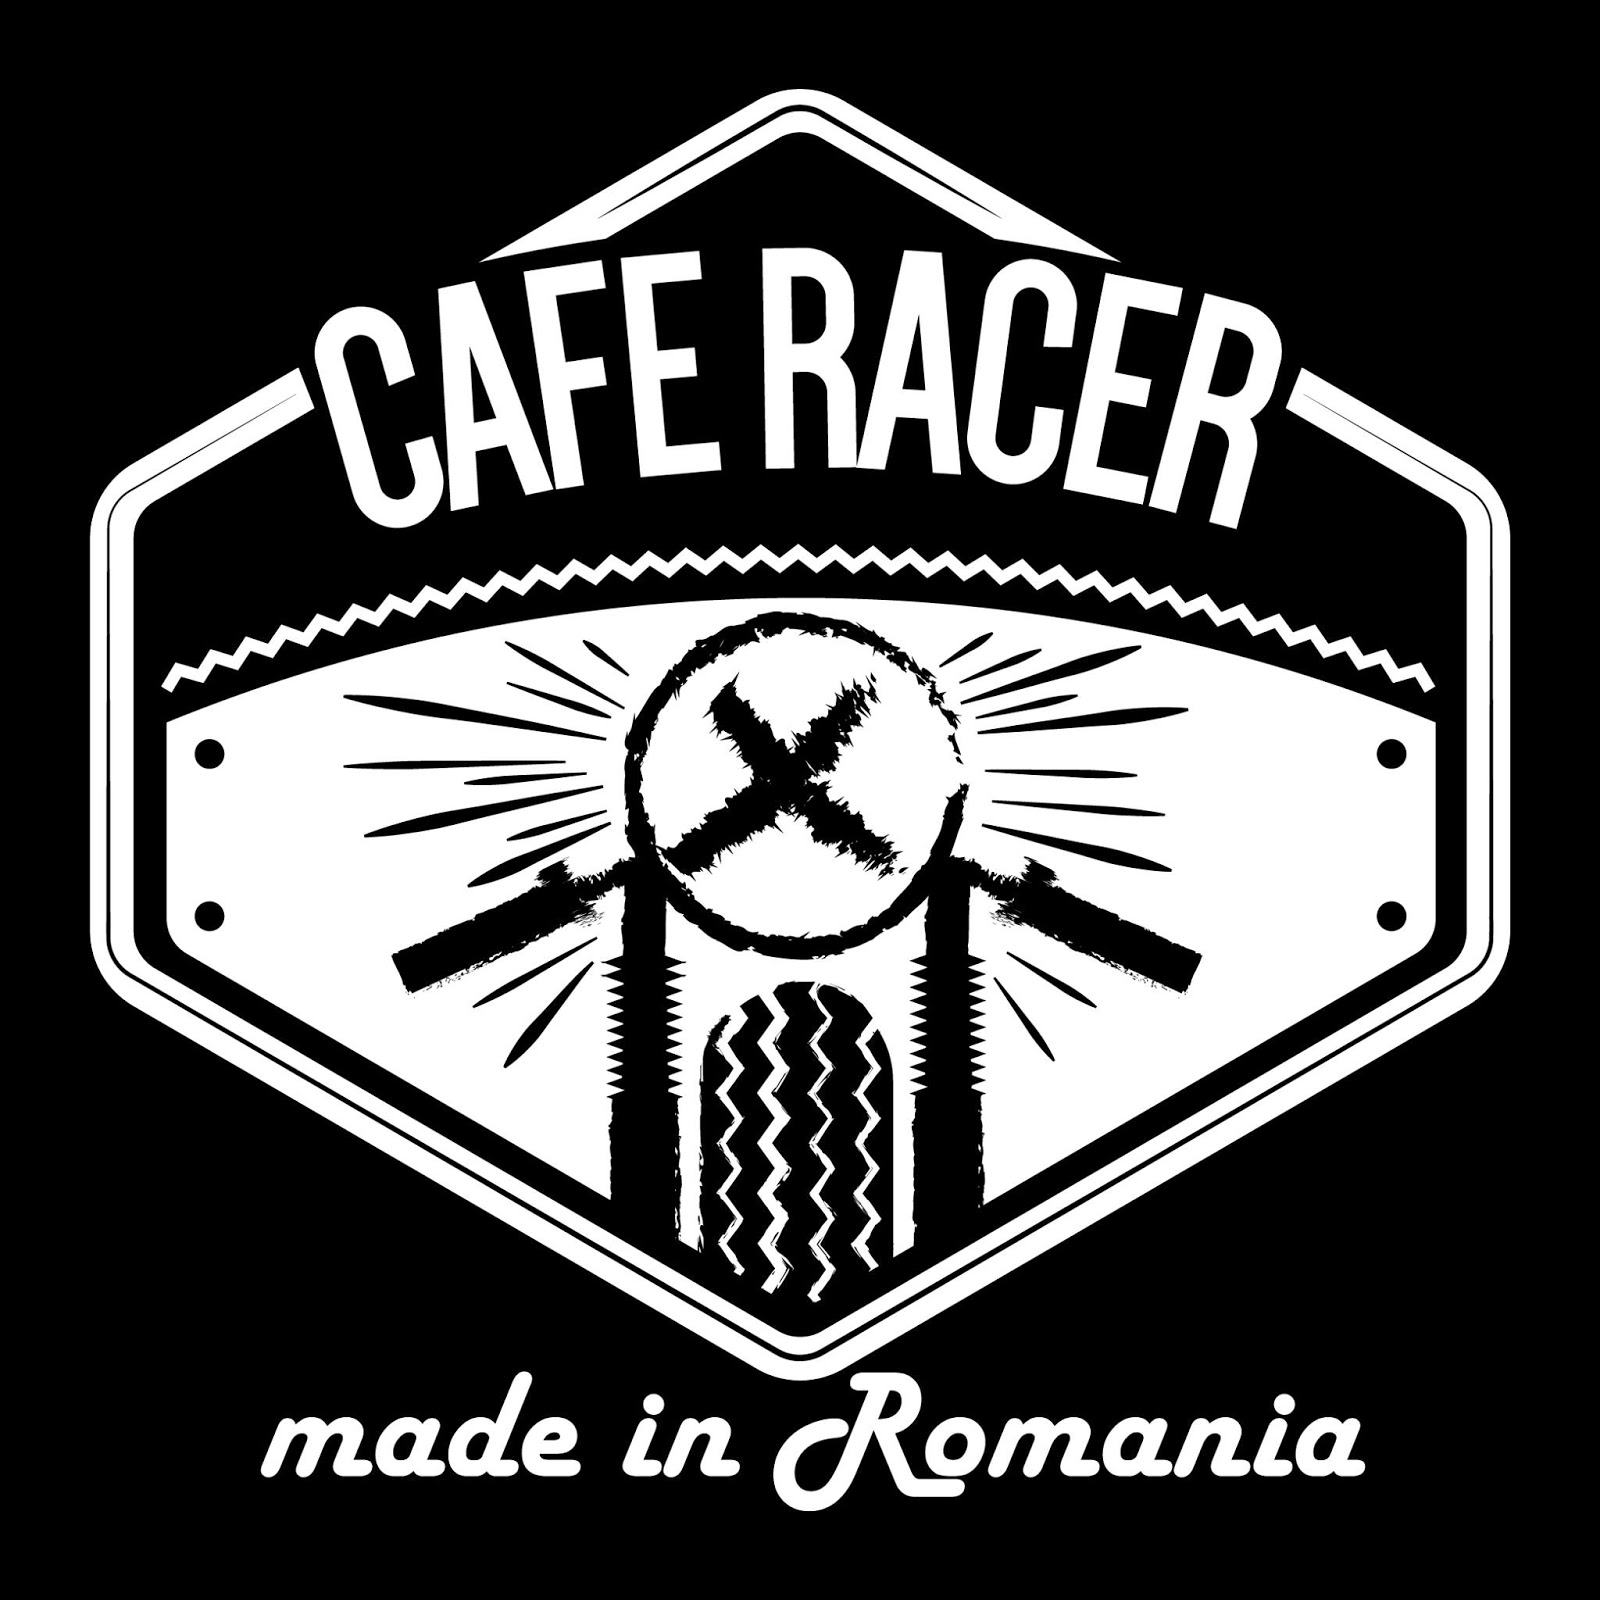 Cafe Racer Romania